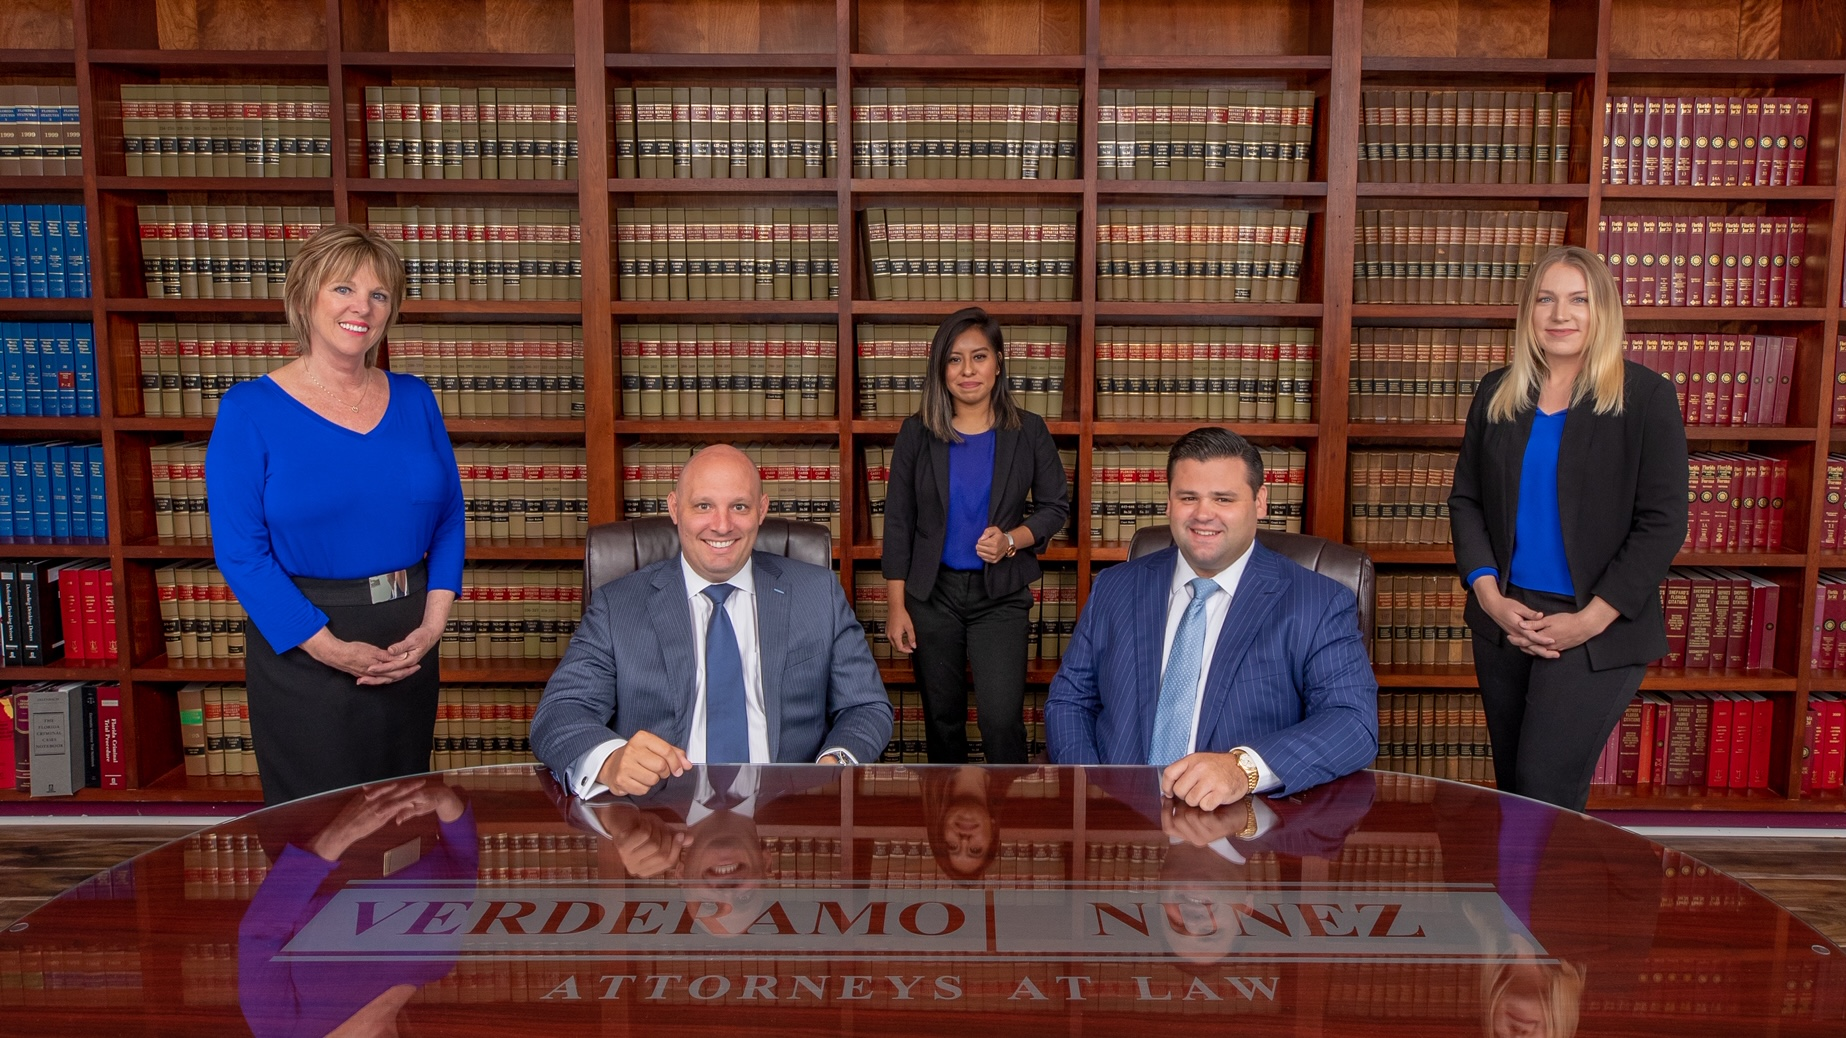 Law Office Verderamo Nunez Team Southwest Florida-Criminal Defense Lawyers